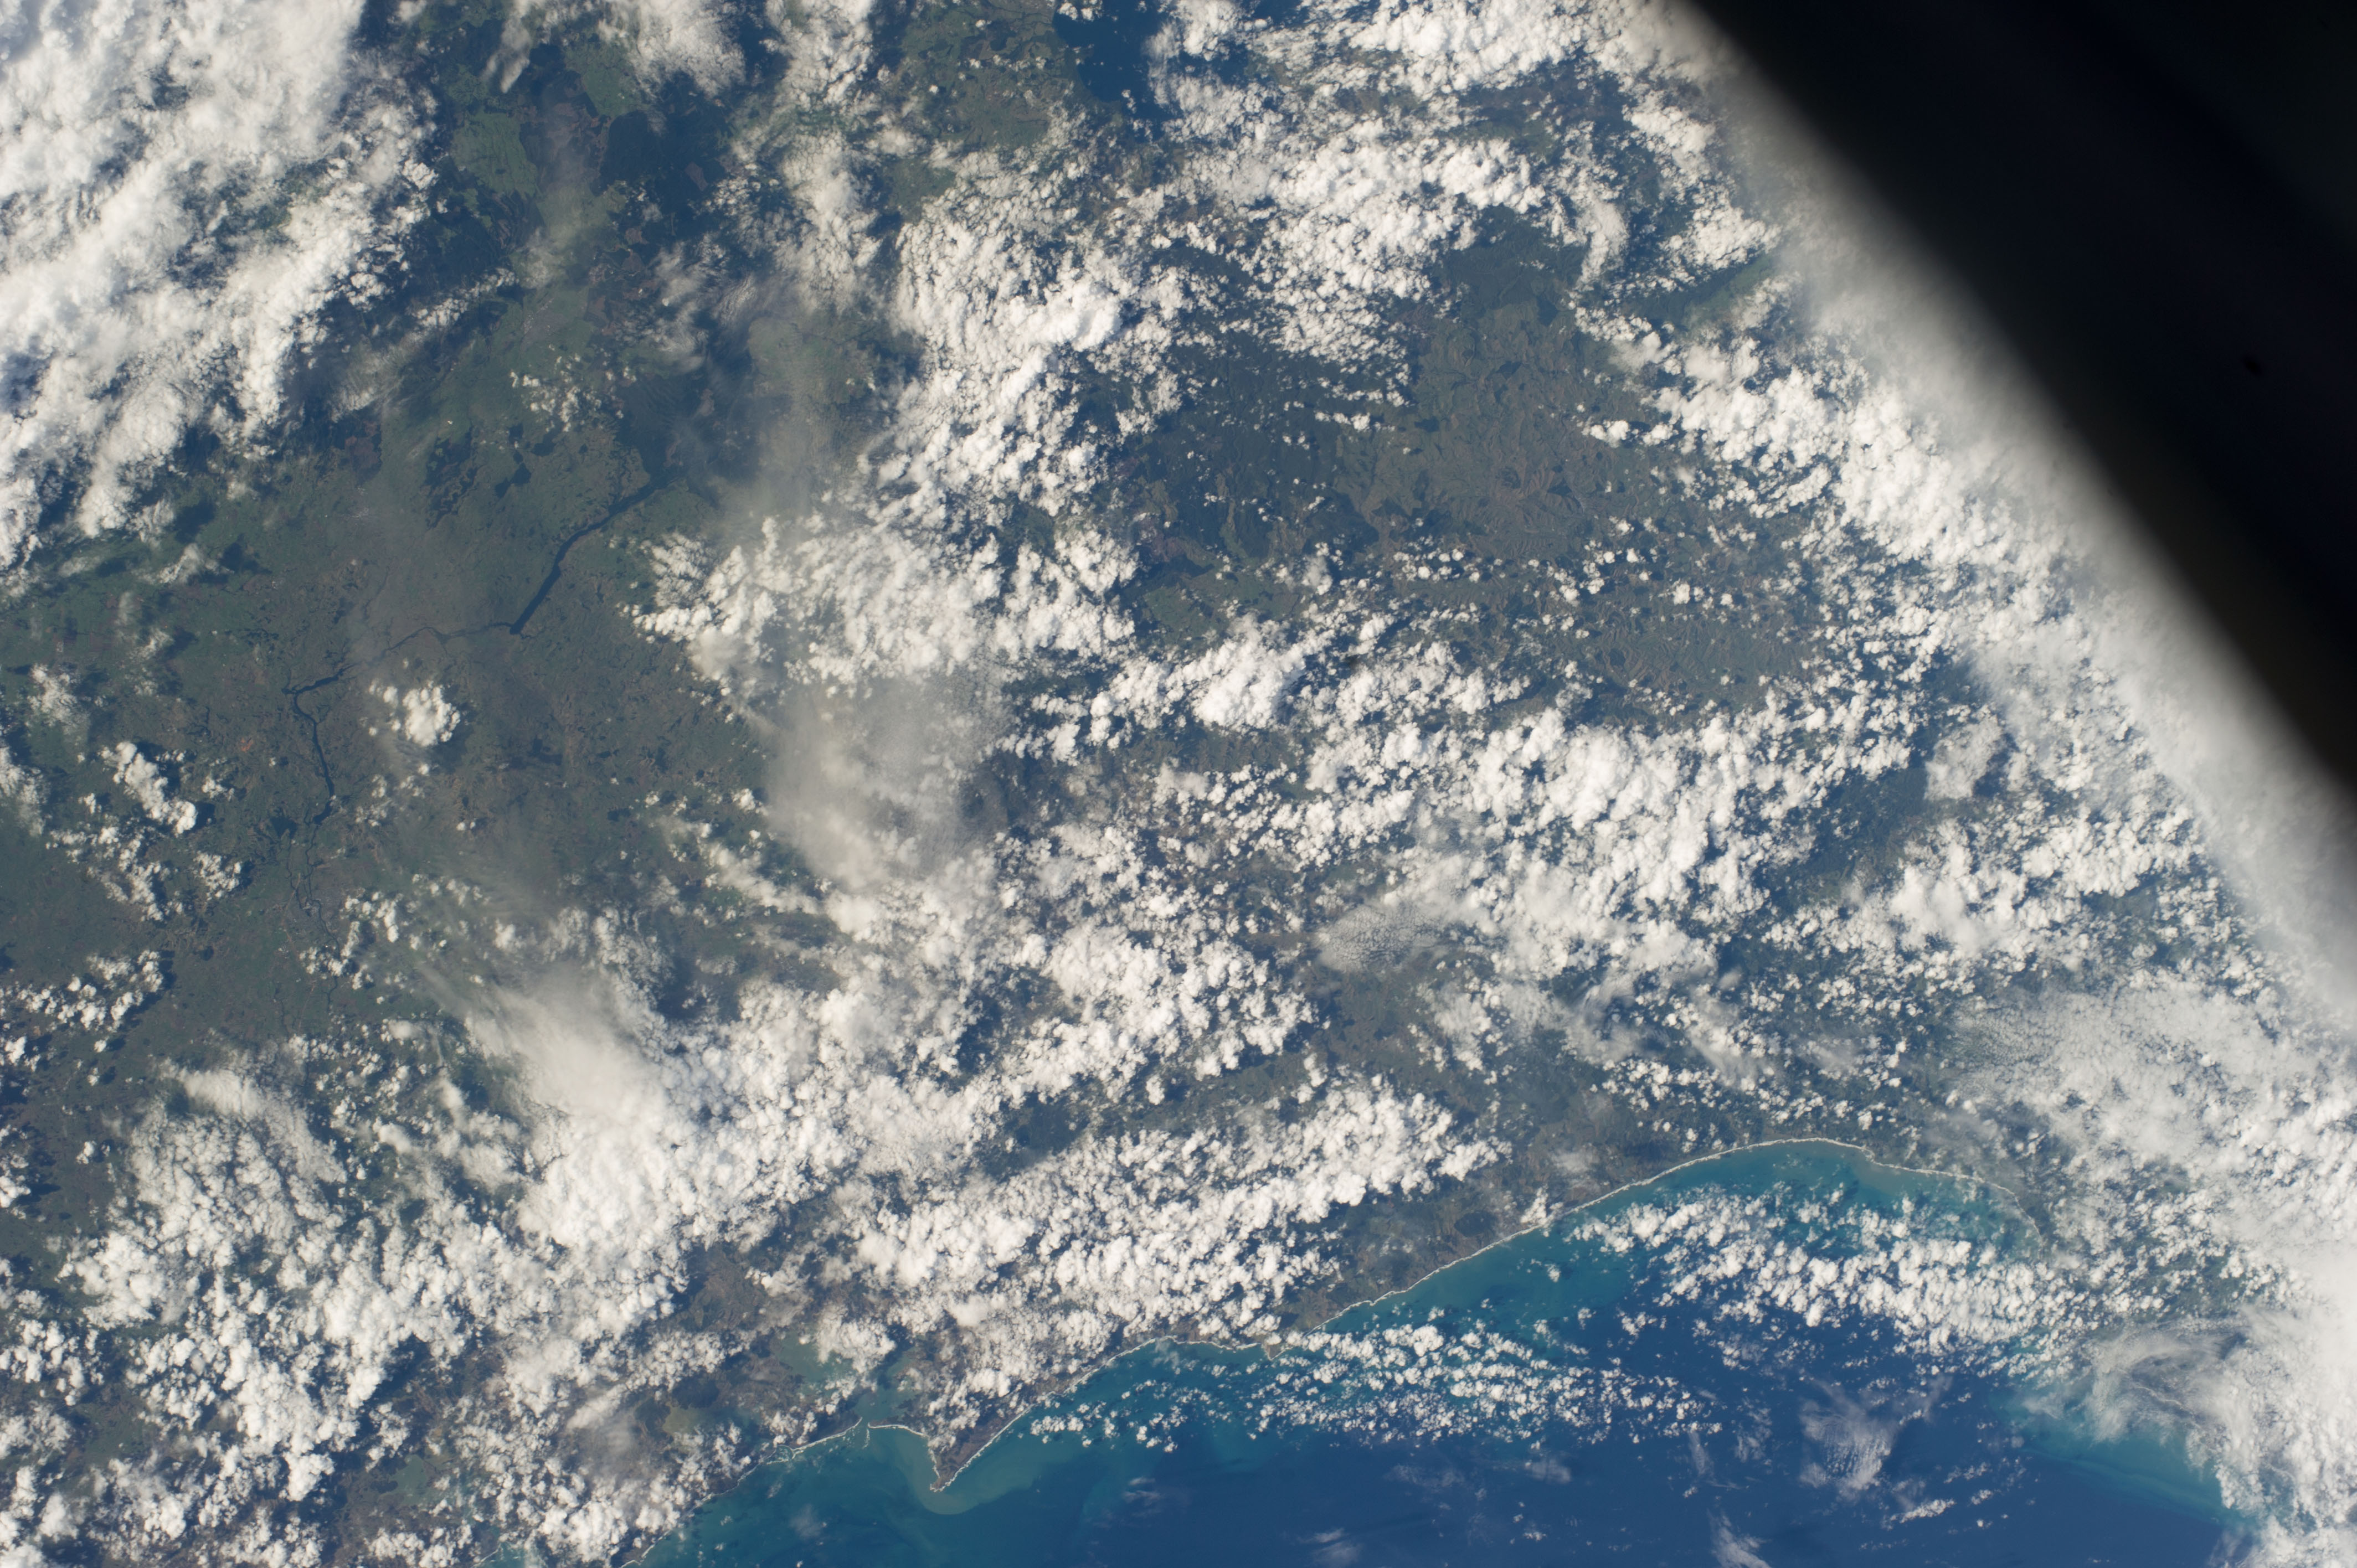 ISS039-E-012865